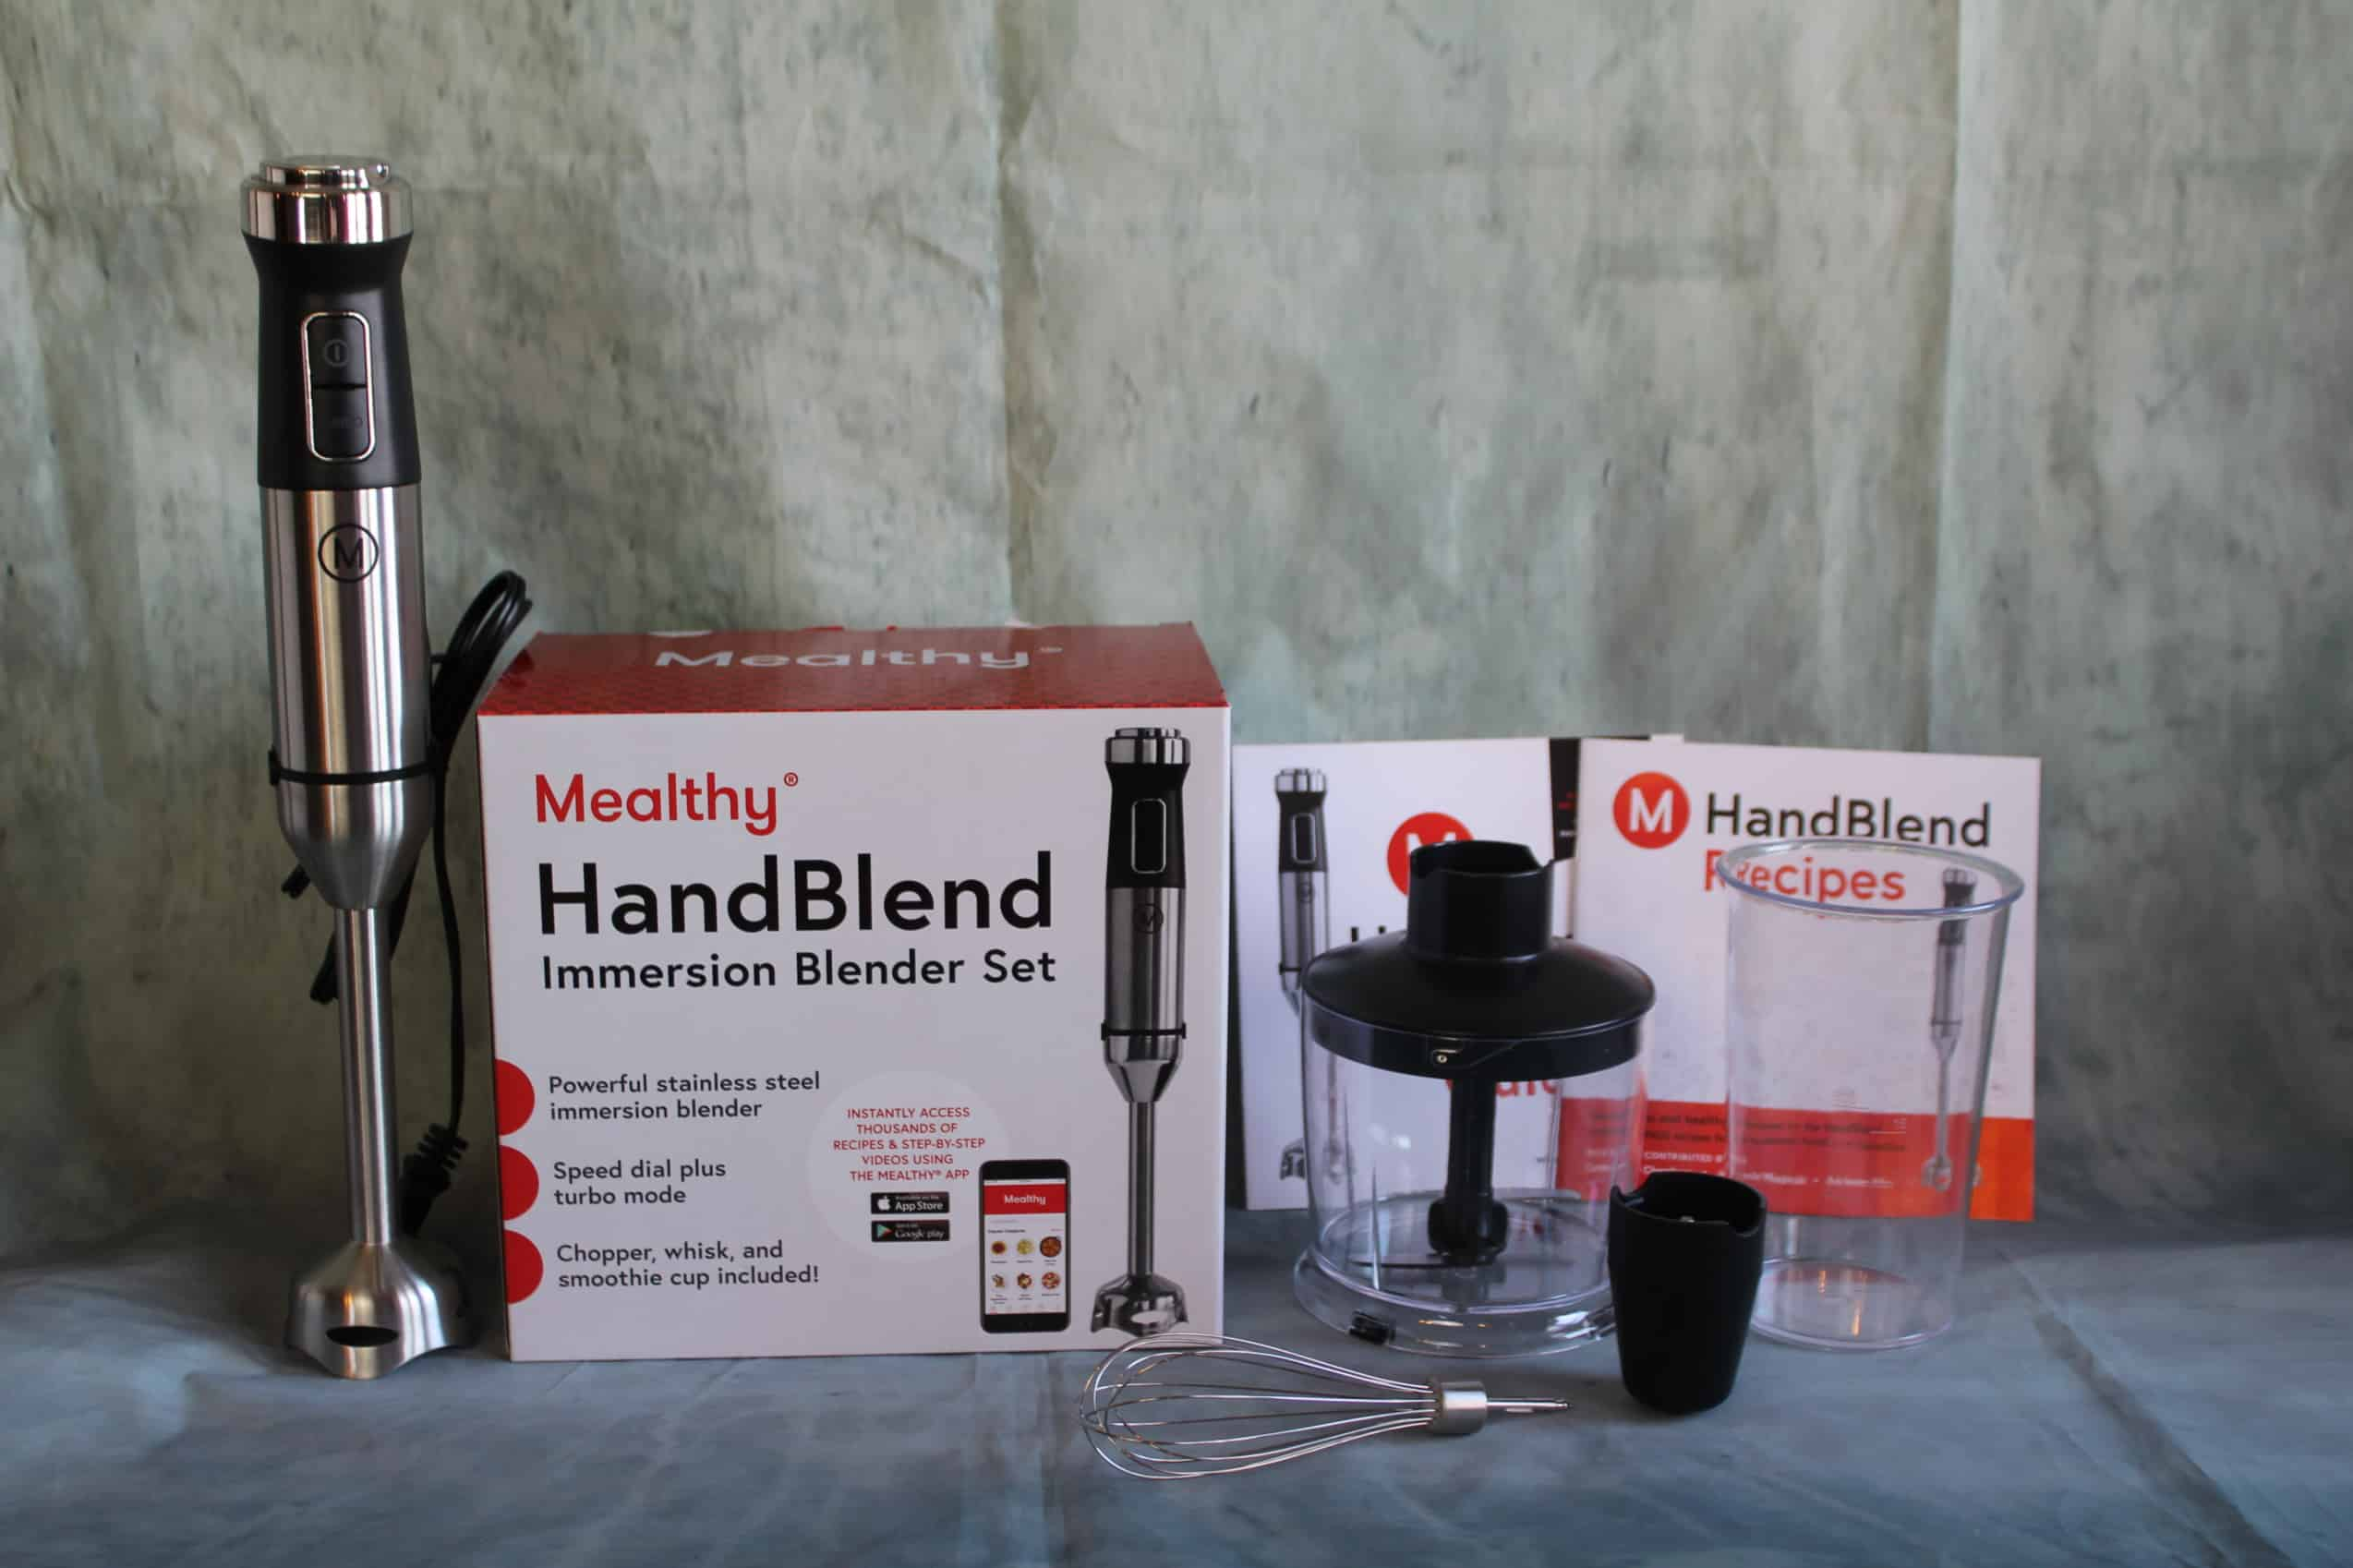 Mealthy HandBlend Immersion Blender